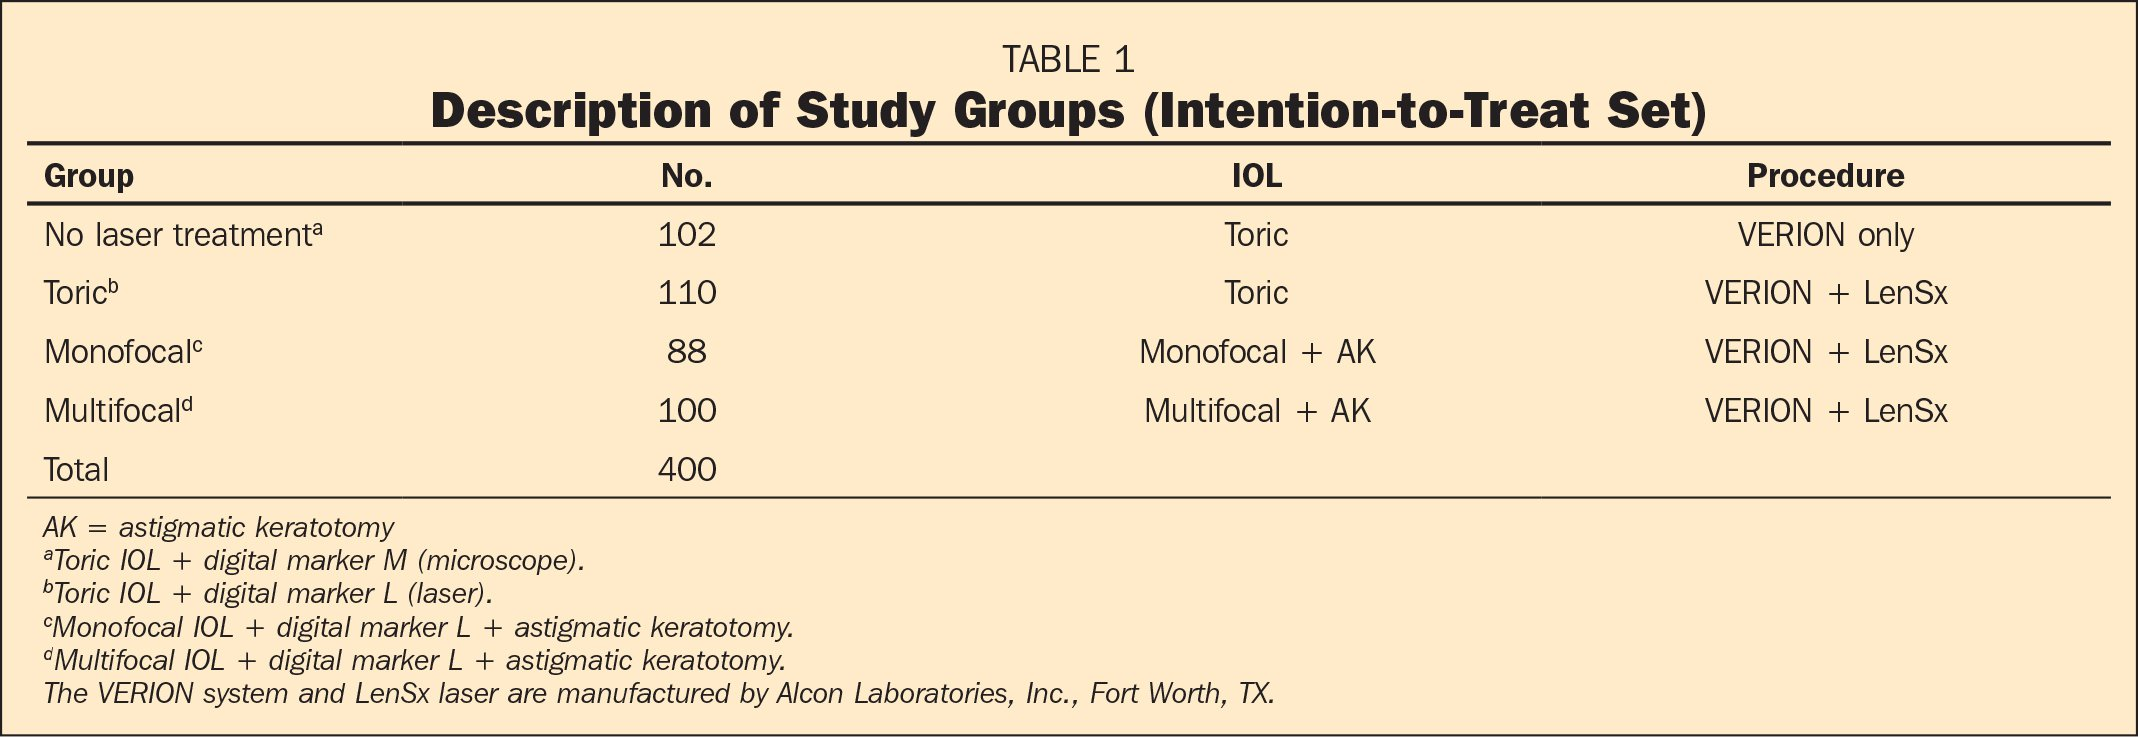 Description of Study Groups (Intention-to-Treat Set)